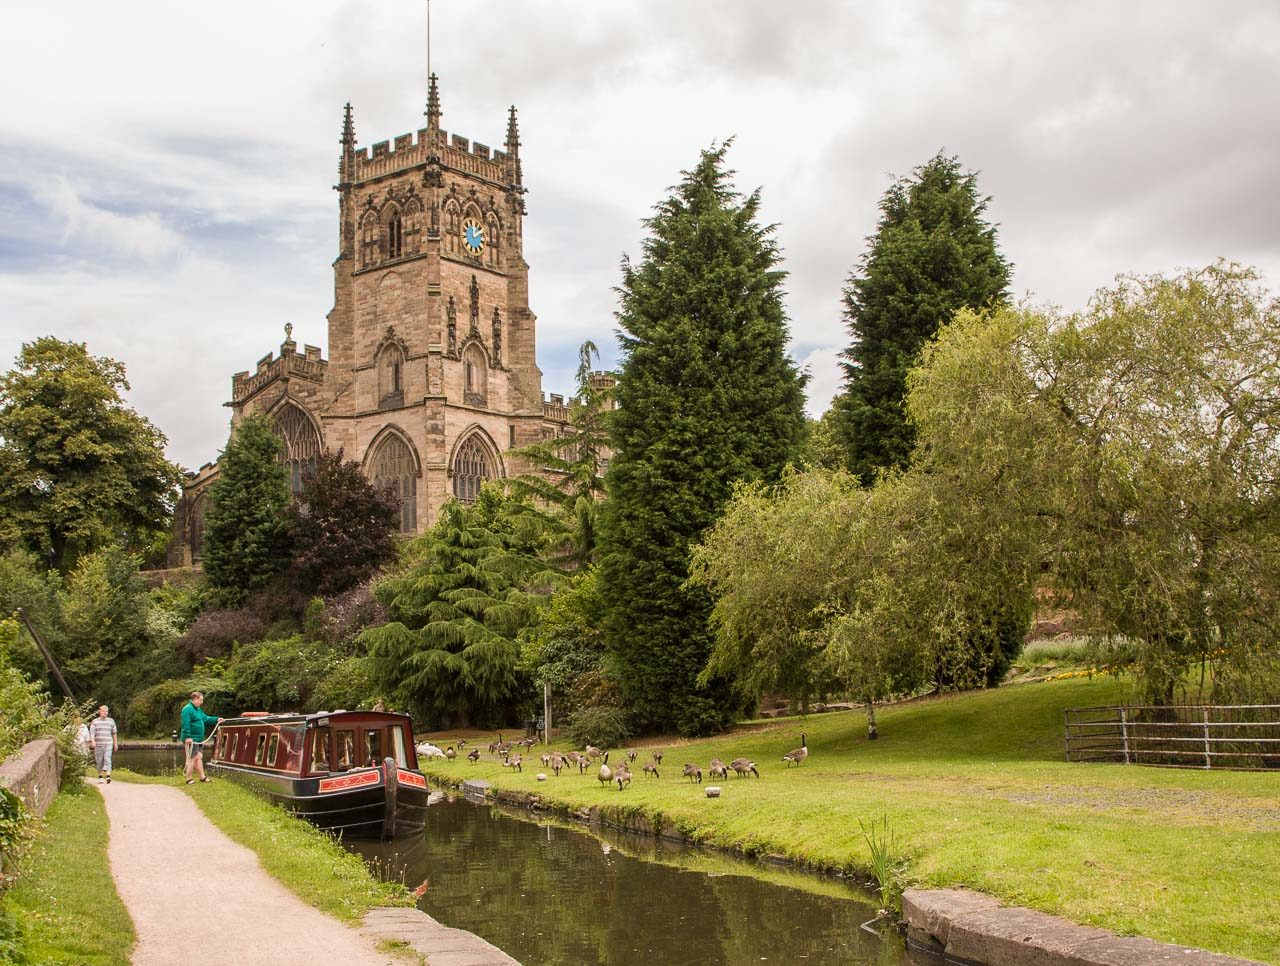 Approachin Kidderminster Lock 6 from the north with St Mary and All Saints church in the background.